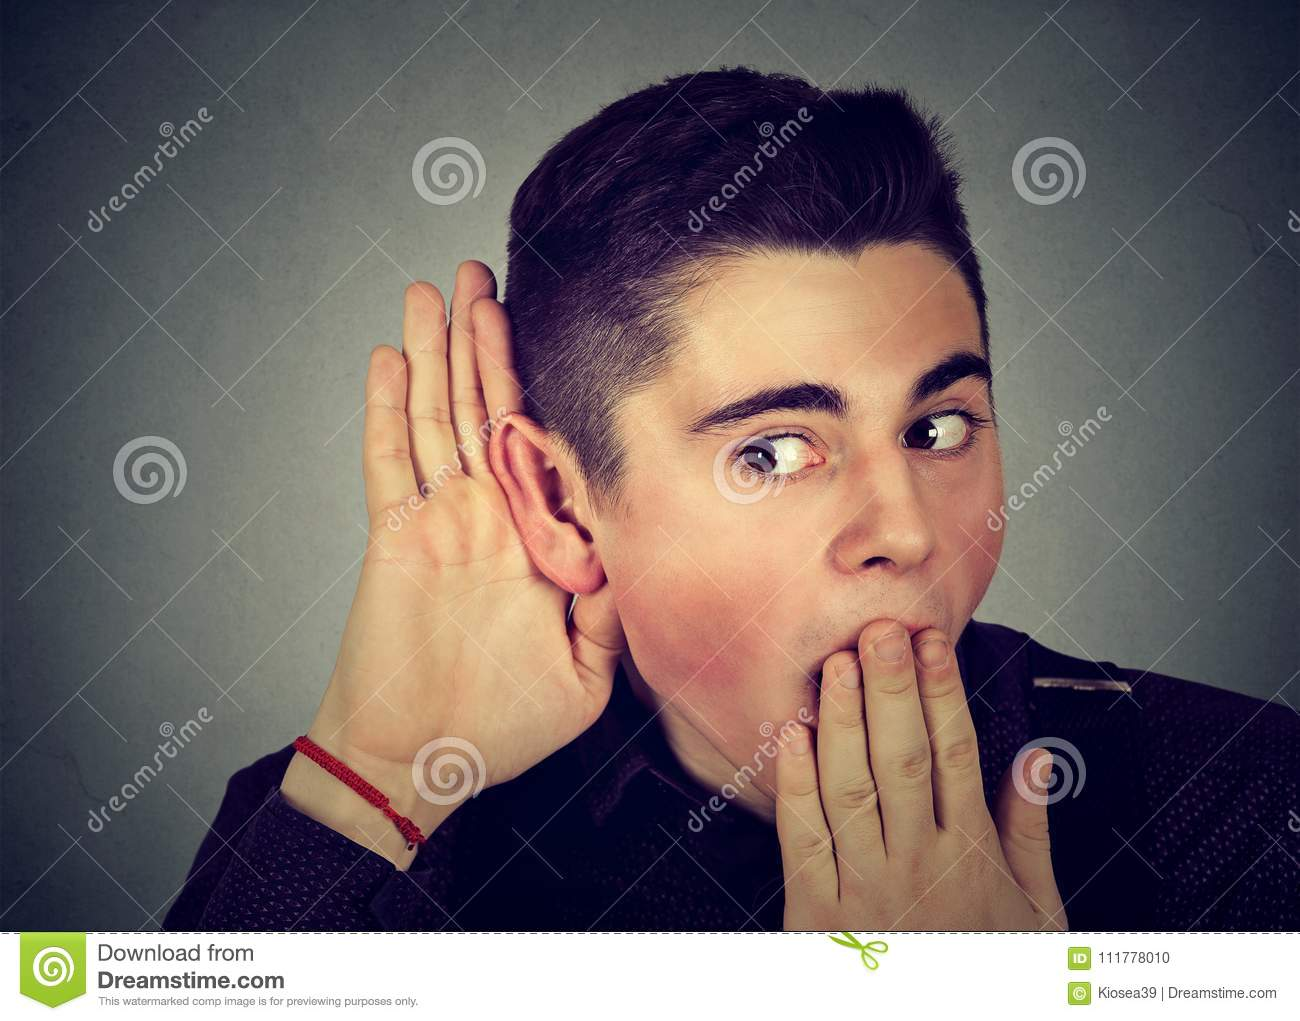 Excited man listening to rumors